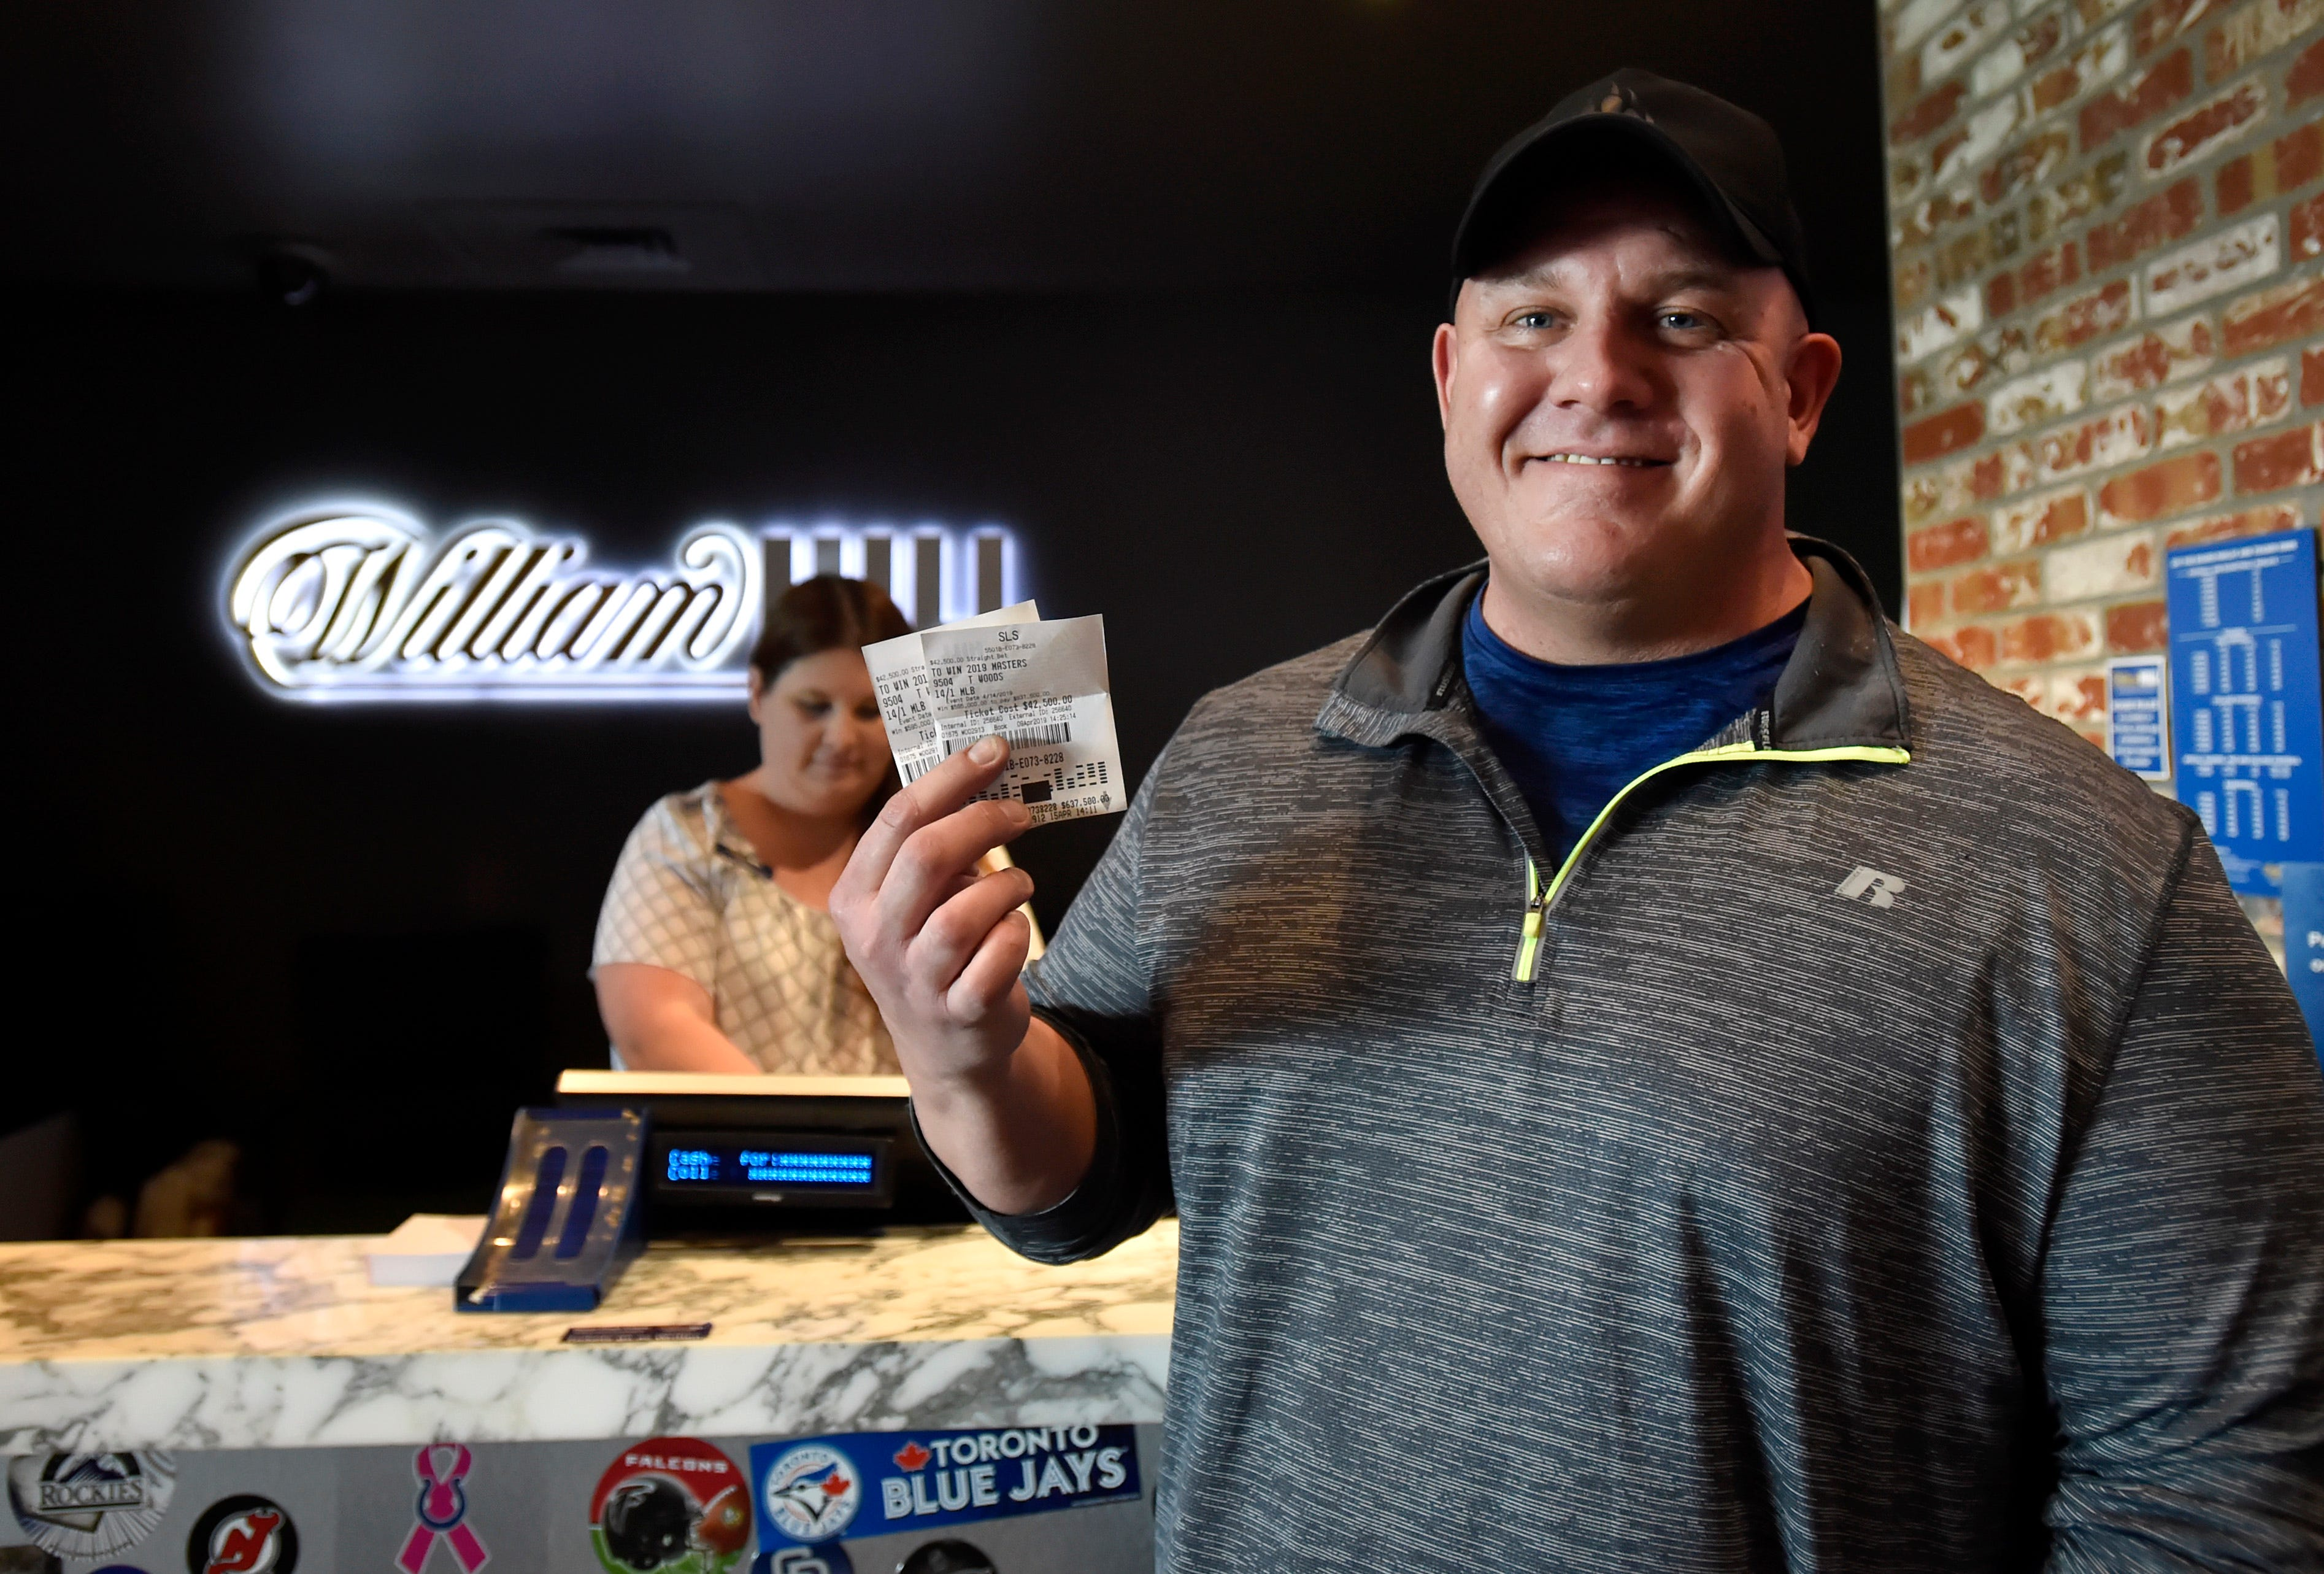 James Adducci holds his winning tickets at the William Hill Sports Book at SLS Las Vegas Hotel on Monday.